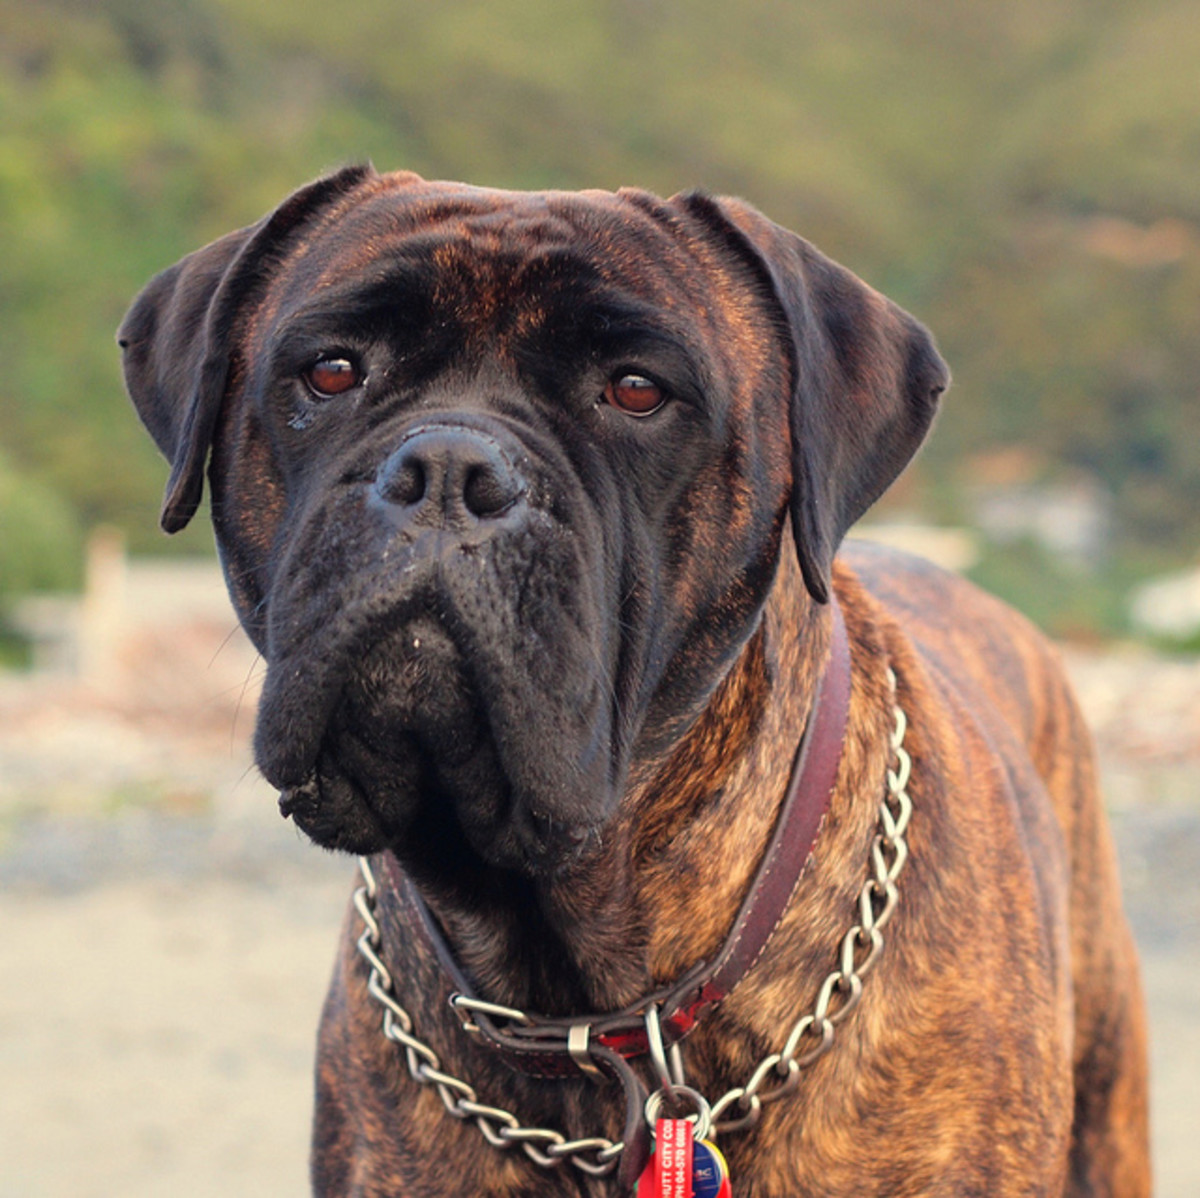 An adult bullmastiff.